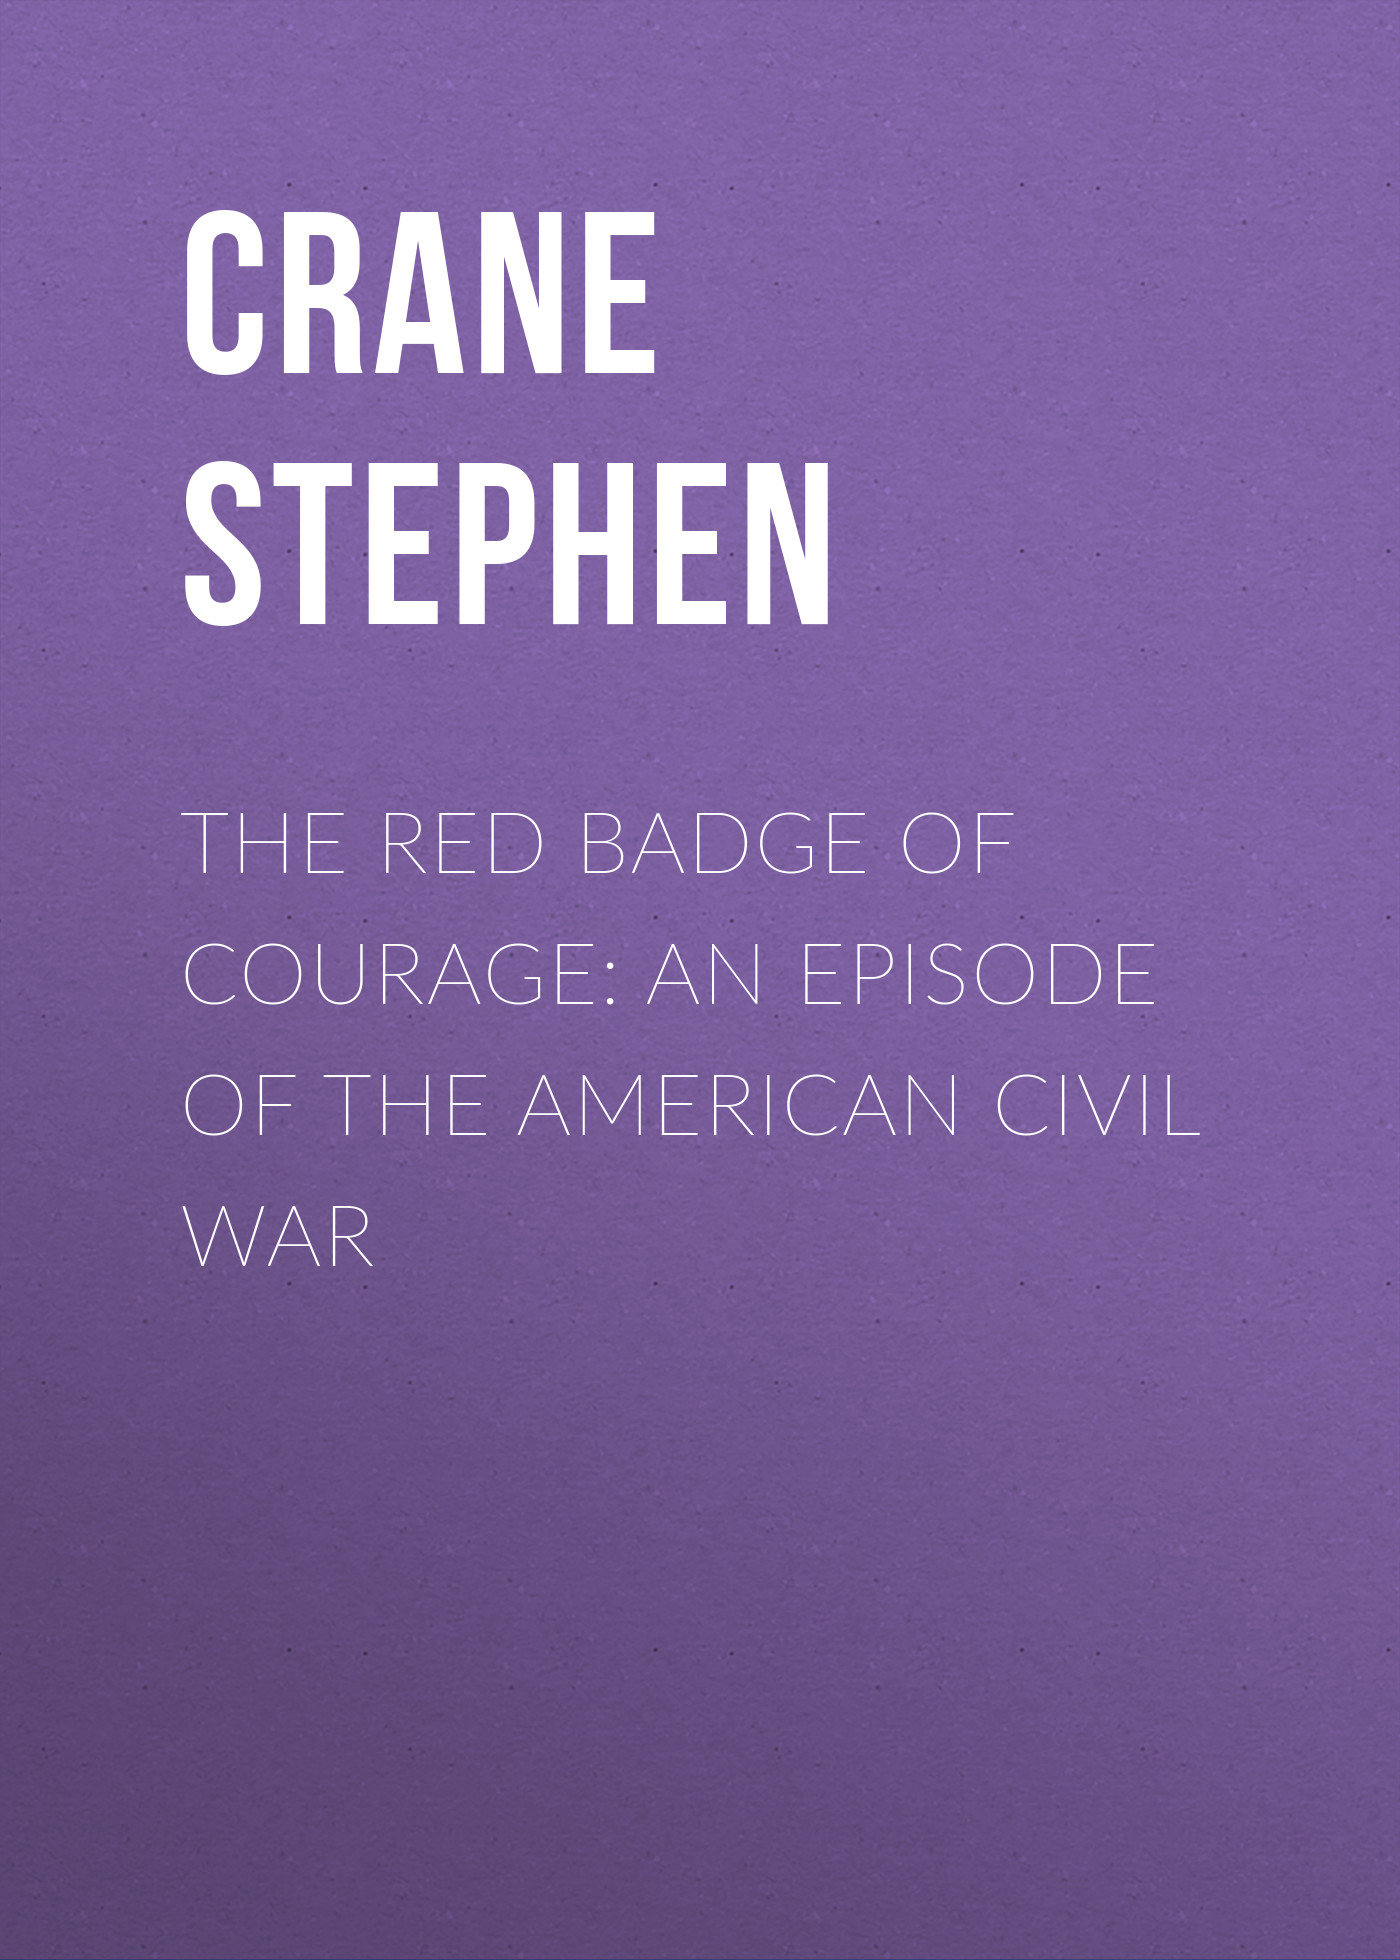 Crane Stephen The Red Badge of Courage: An Episode of the American Civil War sulphated galactans of red seaweeds